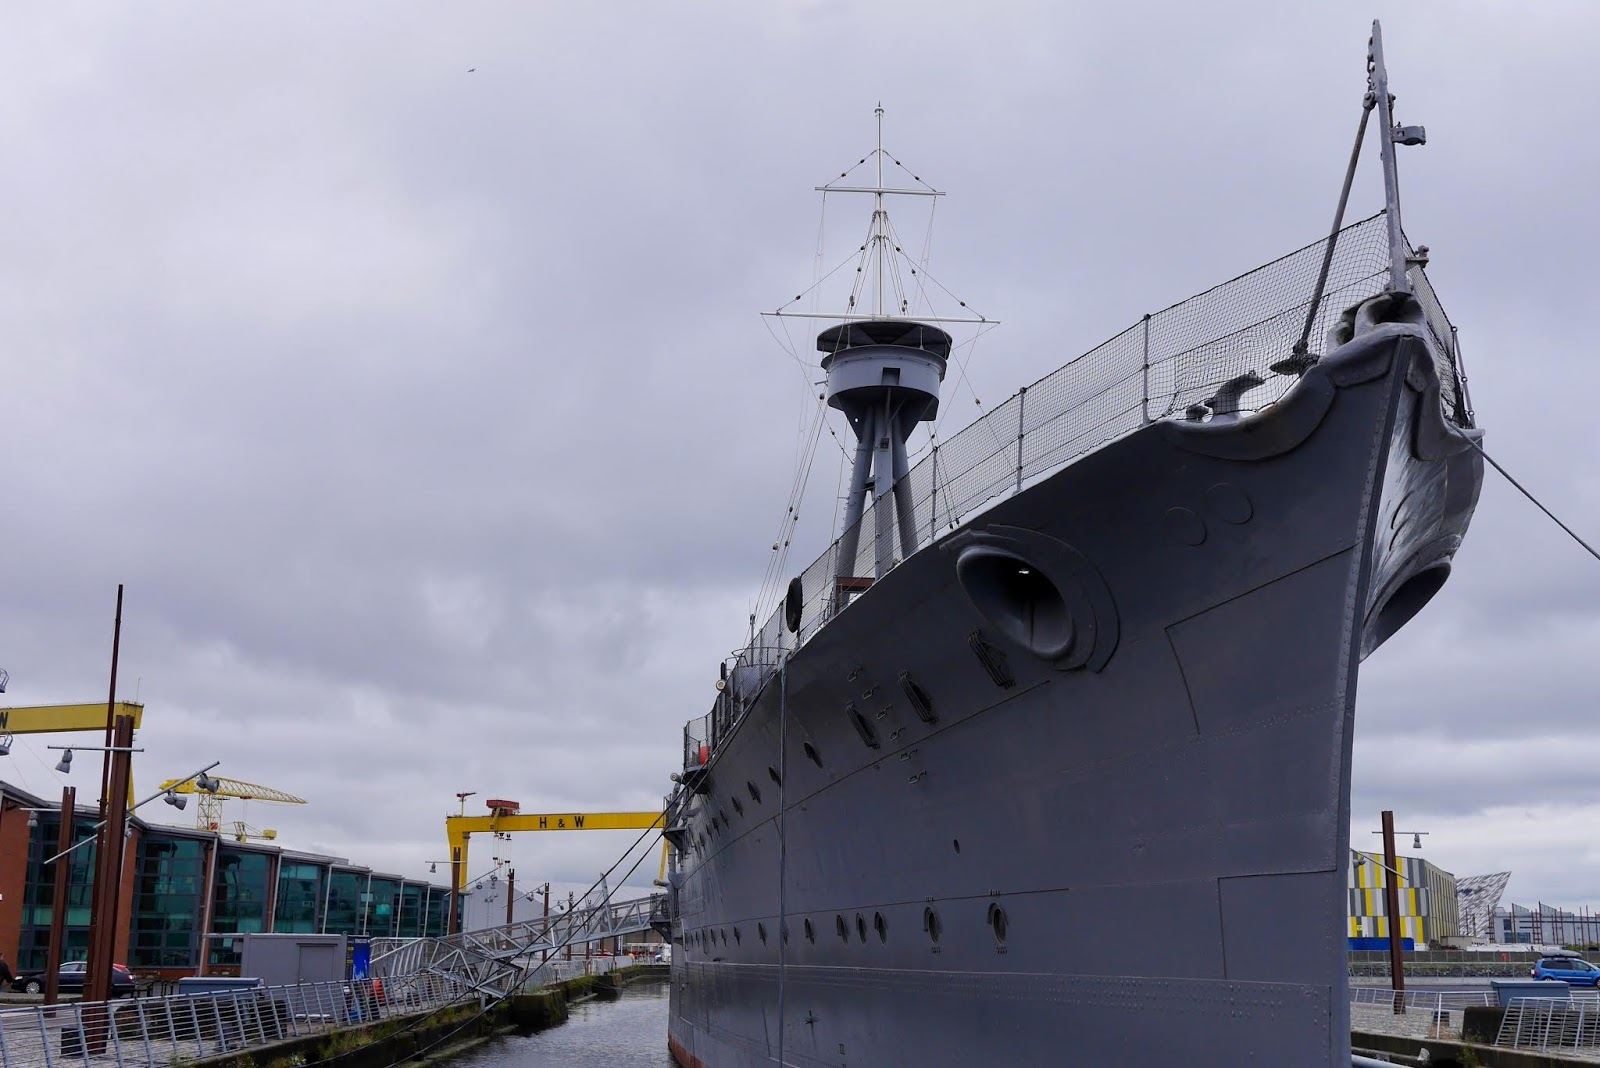 World War 1 light cruiser HMS Caroline in Belfast by  Scottish Blogger Cal McTravels from www.calmctravels.com